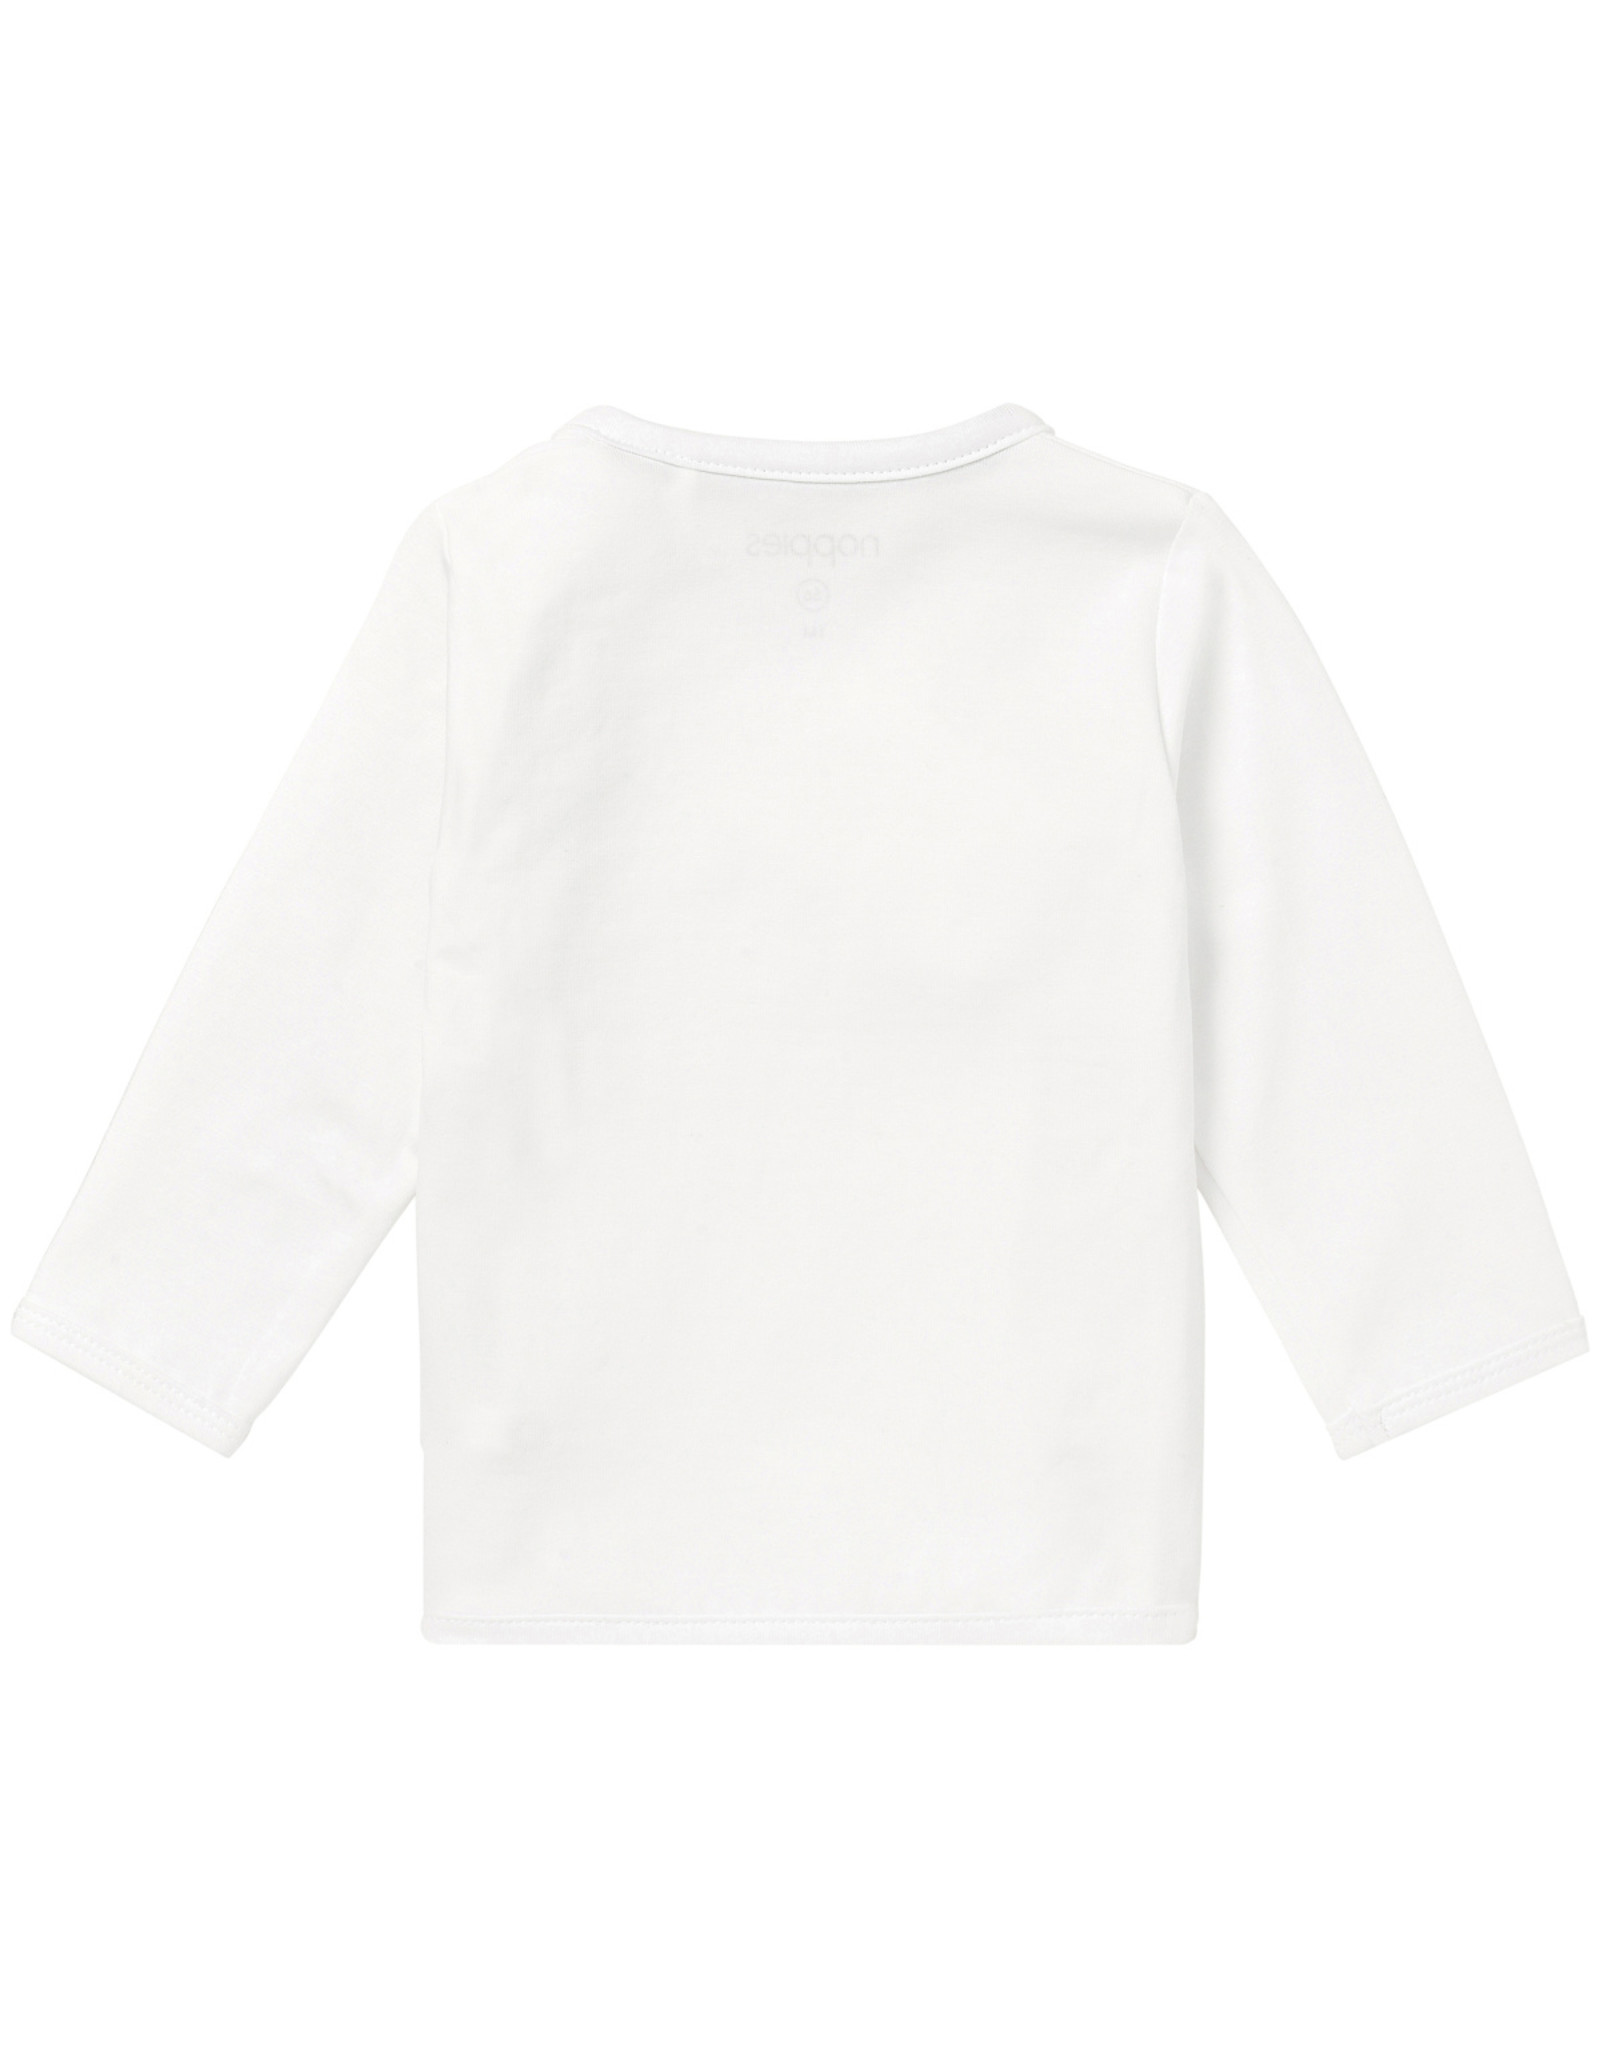 Noppies Unisex Longsleeve Little White